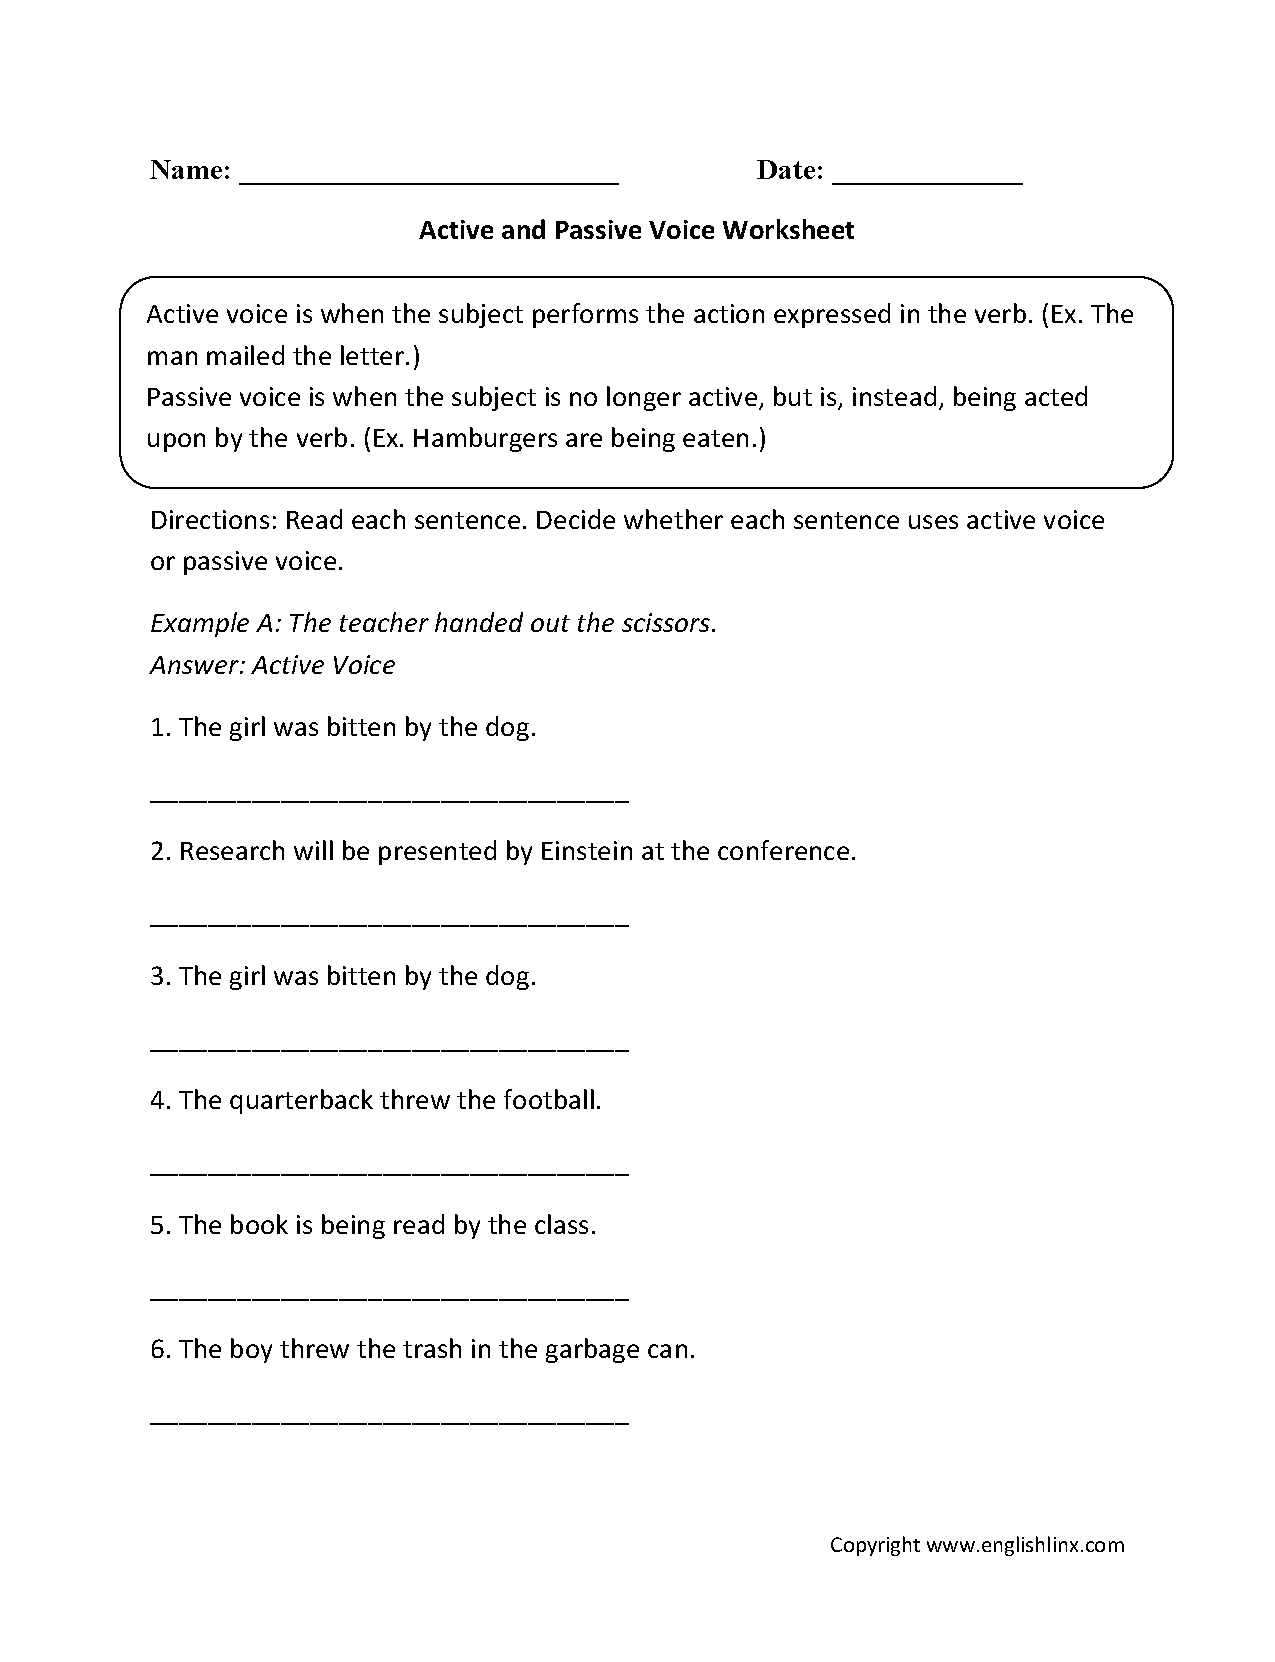 Worksheets Active And Passive Voice Worksheet englishlinx com active and passive voice worksheets worksheets